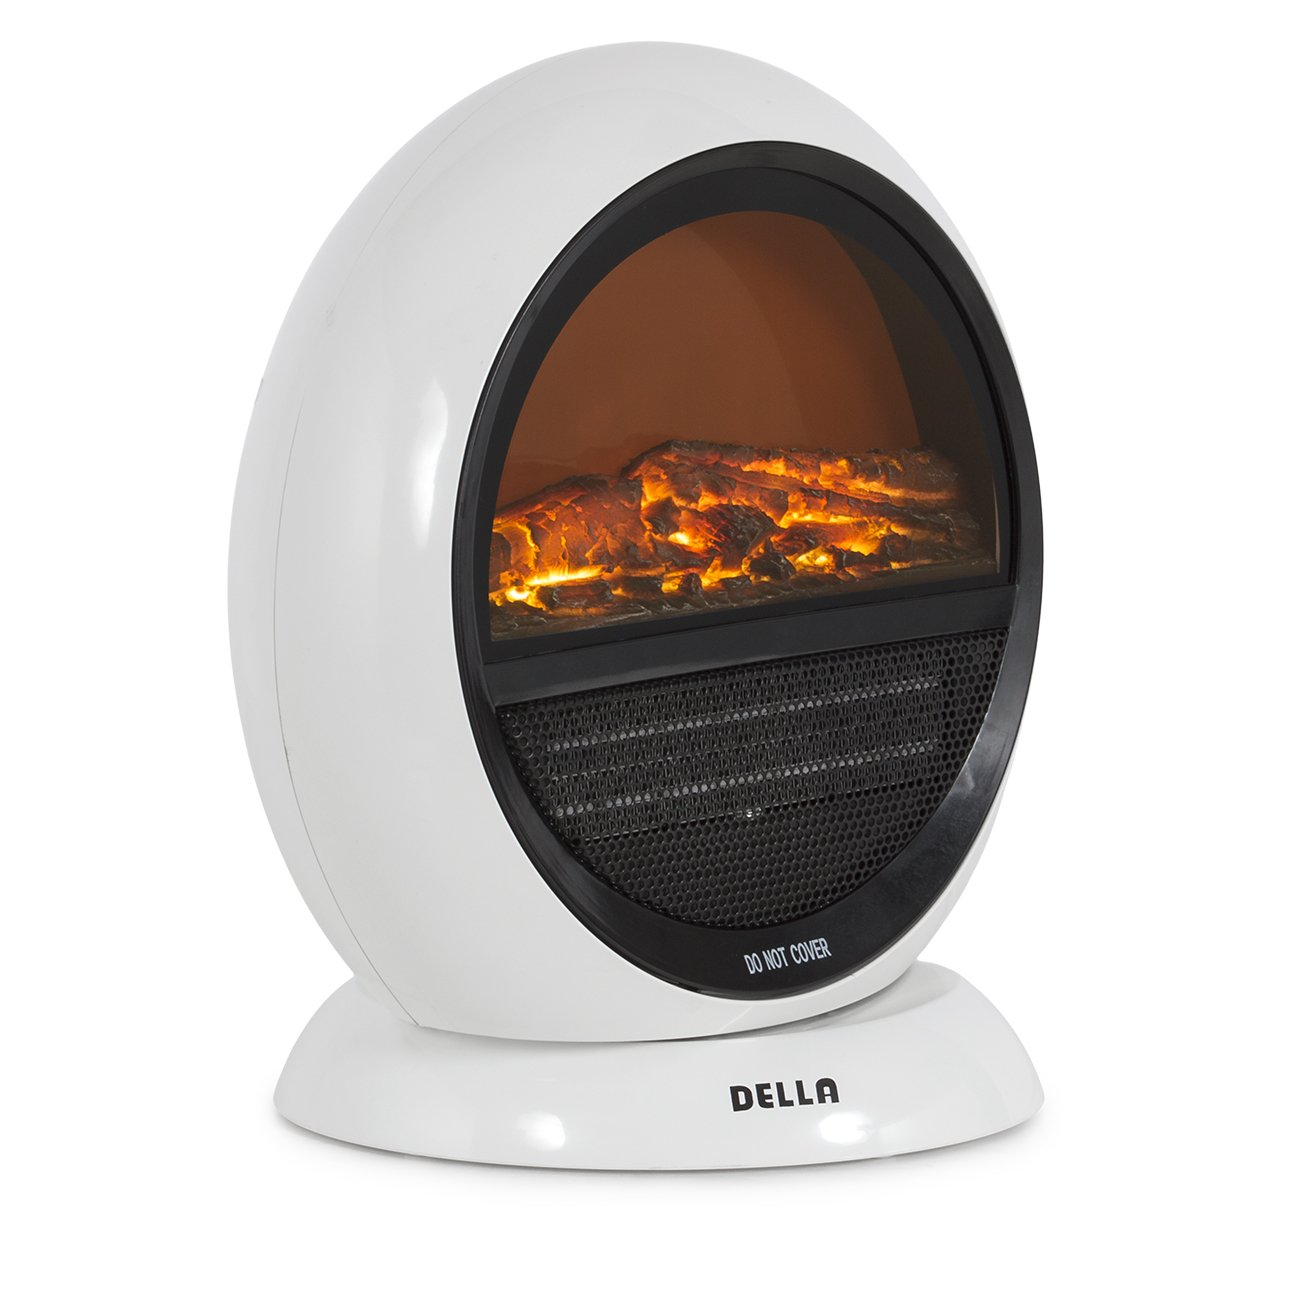 Amazon.com: Della 1500W Freestanding Electric Fireplace With 3D Flame Effect,  Oscillating, White: Home U0026 Kitchen